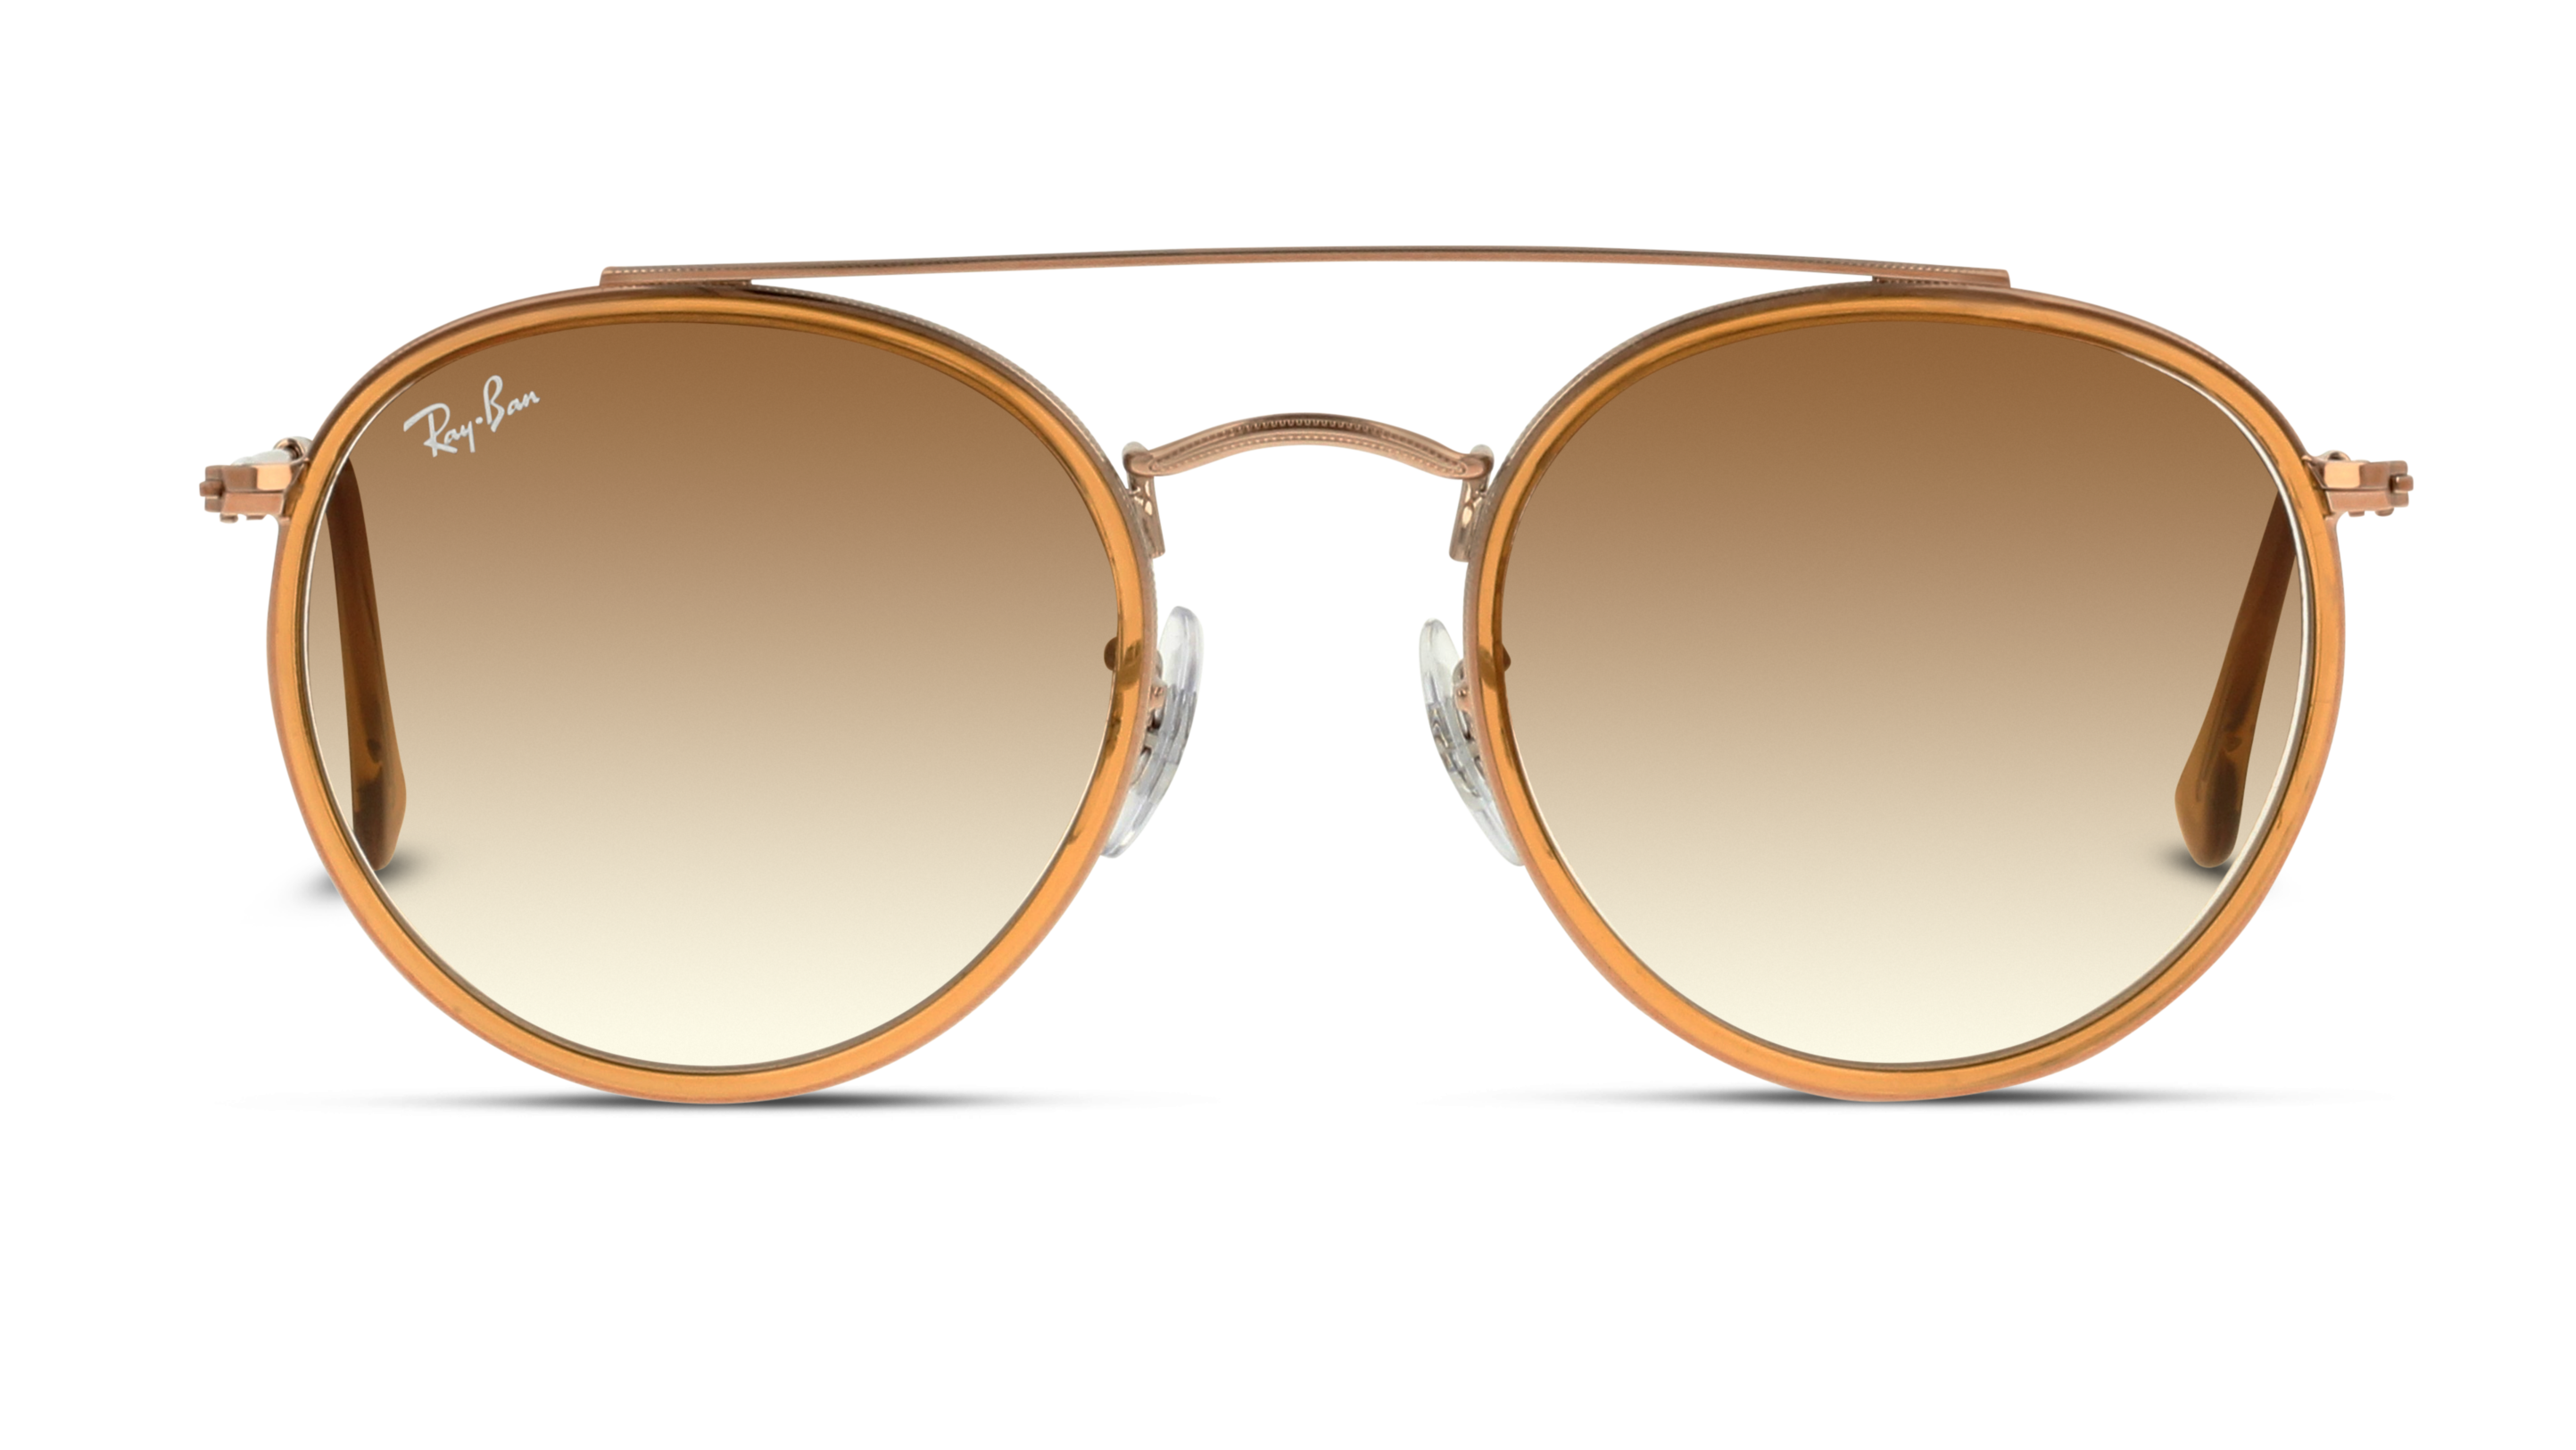 Front Ray-Ban Ray-Ban 0RB3647N 907051 51/22 Zilver, Bruin/Bruin